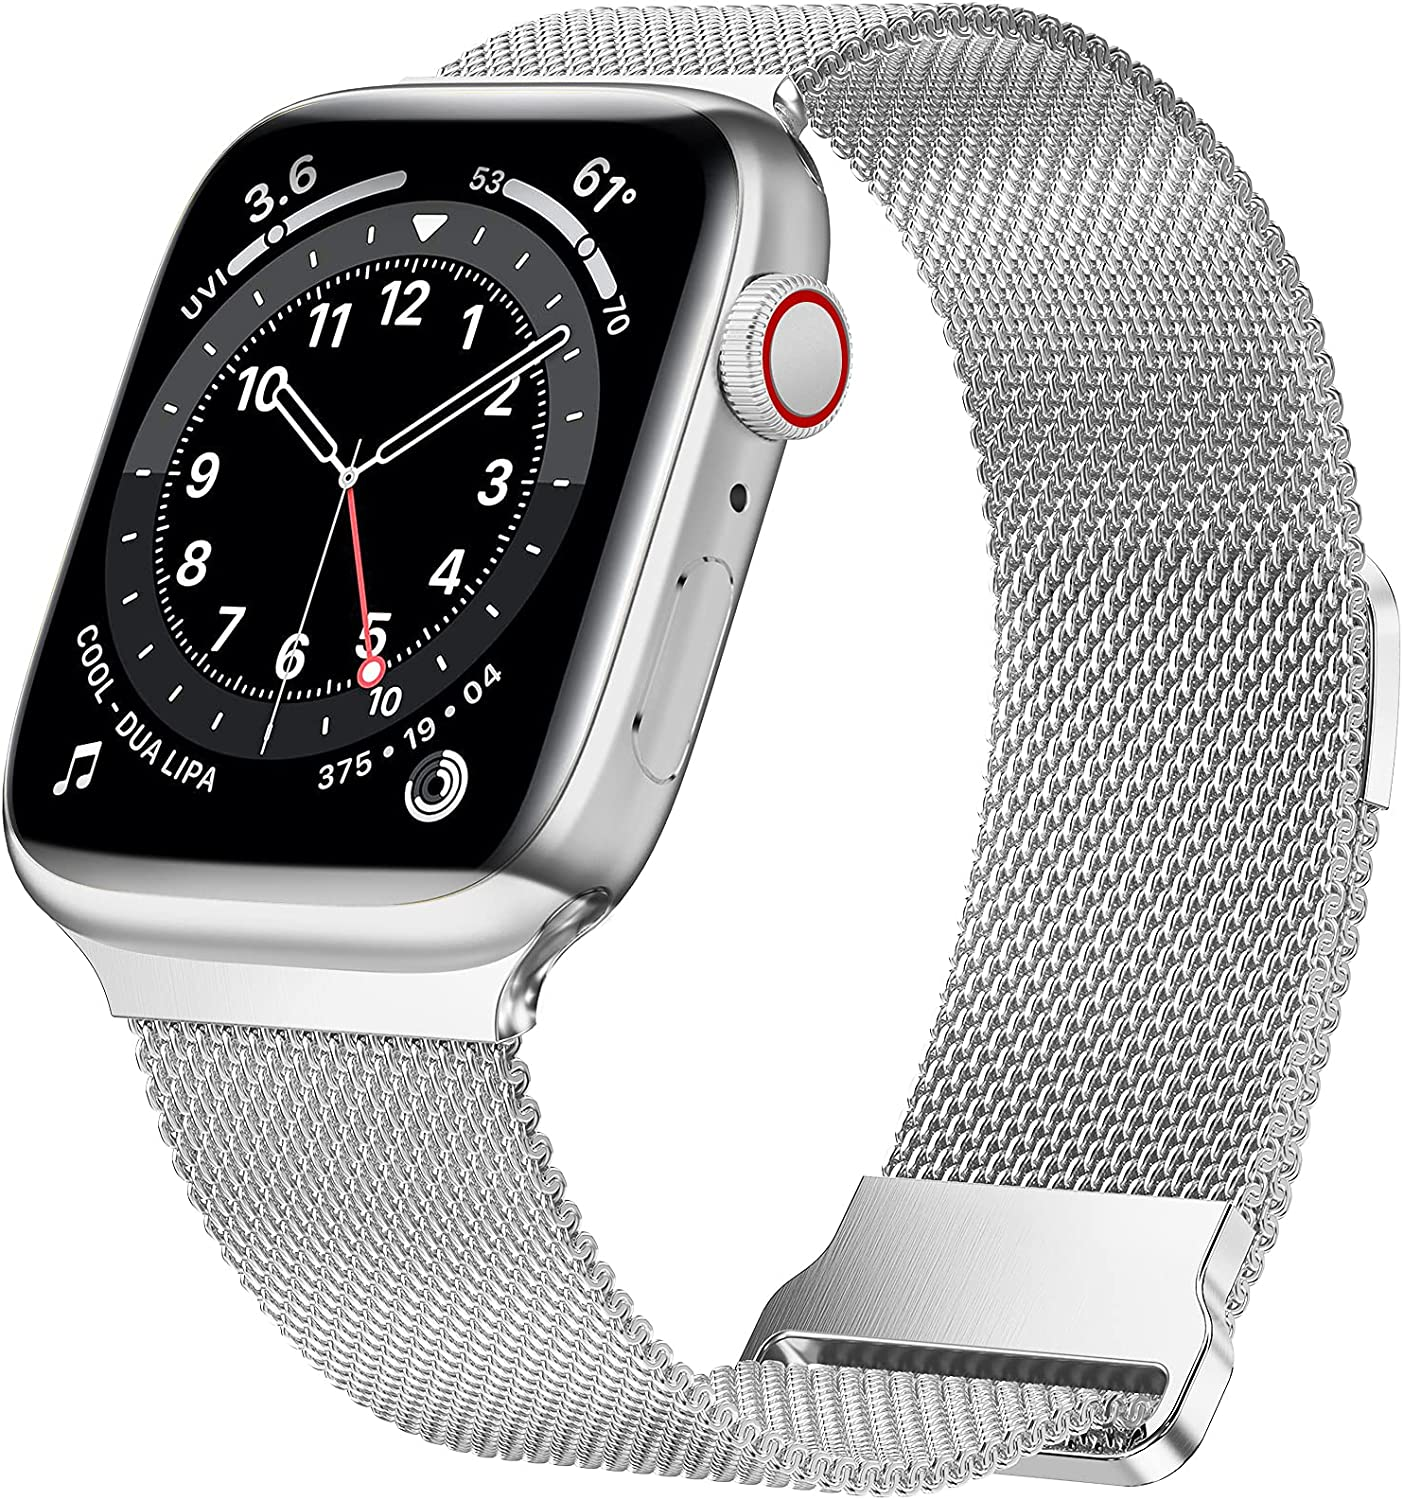 JuQBanke Magnetic Band Compatible with Apple Watch 38mm 40mm, Stainless Steel Mesh Milanese Strap with Adjustable Loop, Metal Wristband for iWatch SE Series 6 5 4 3 2 1 for Women Men, Silver